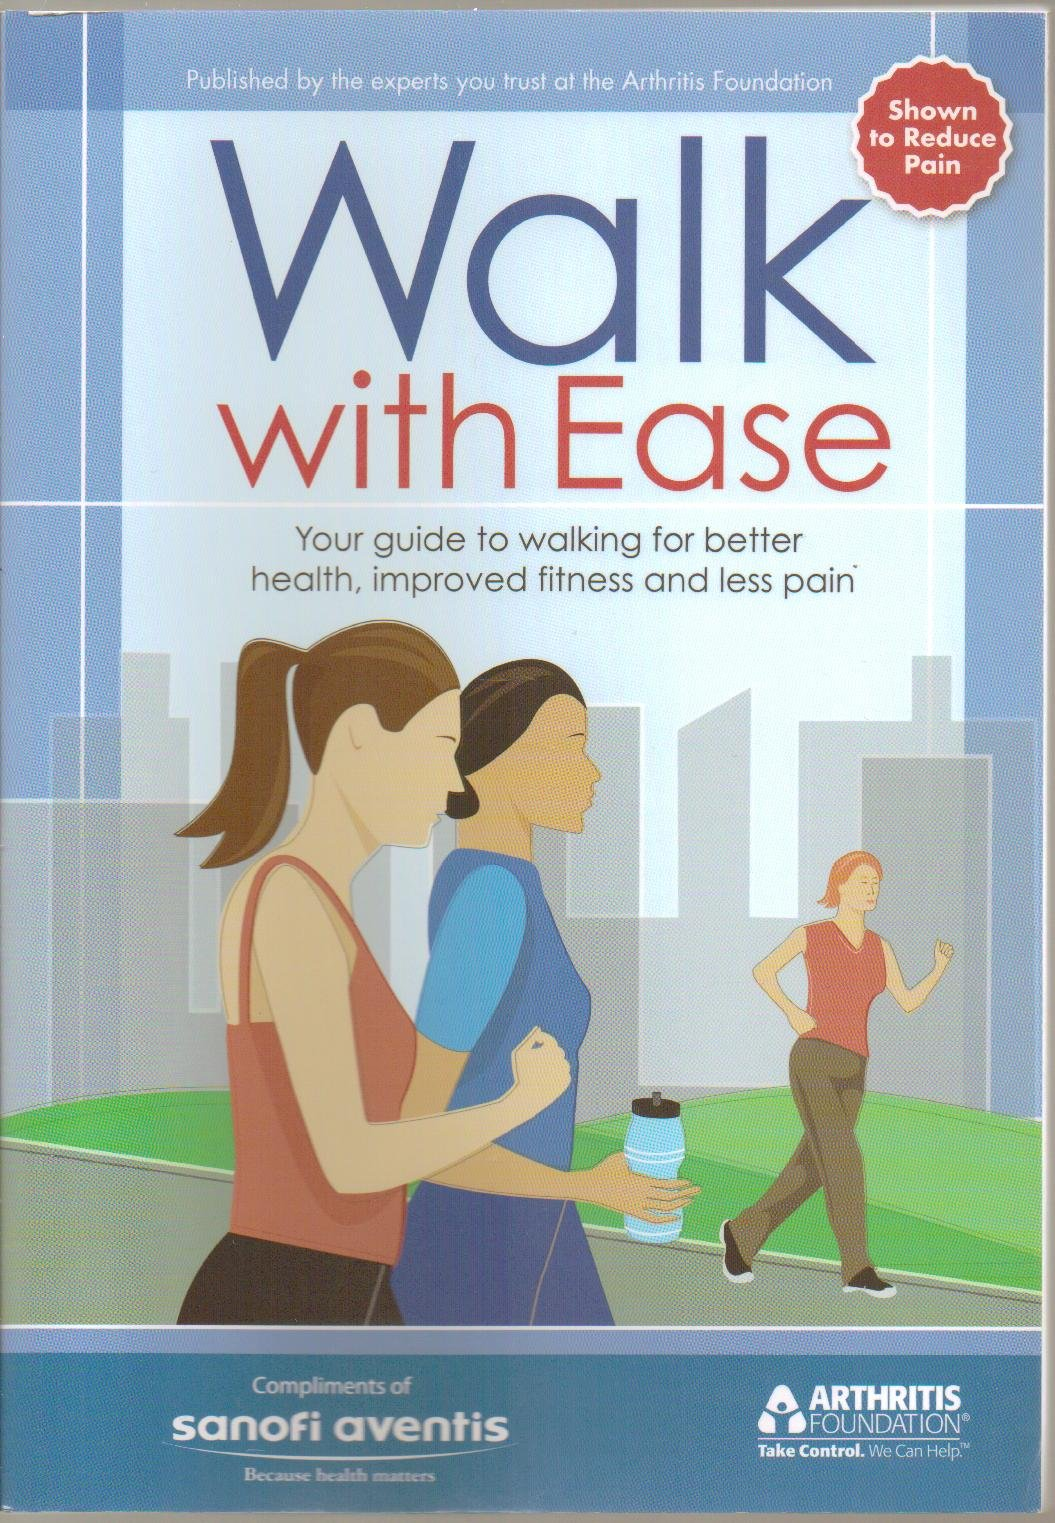 Download Walk with Ease, Your Guide to Walking for Better Health, Improved Fitness and Less Pain / Workbook, Personalized Guide with Questionaires - Paperback - First Edition, 6th Printing 2010 (Shown to REDUCE PAIN) pdf